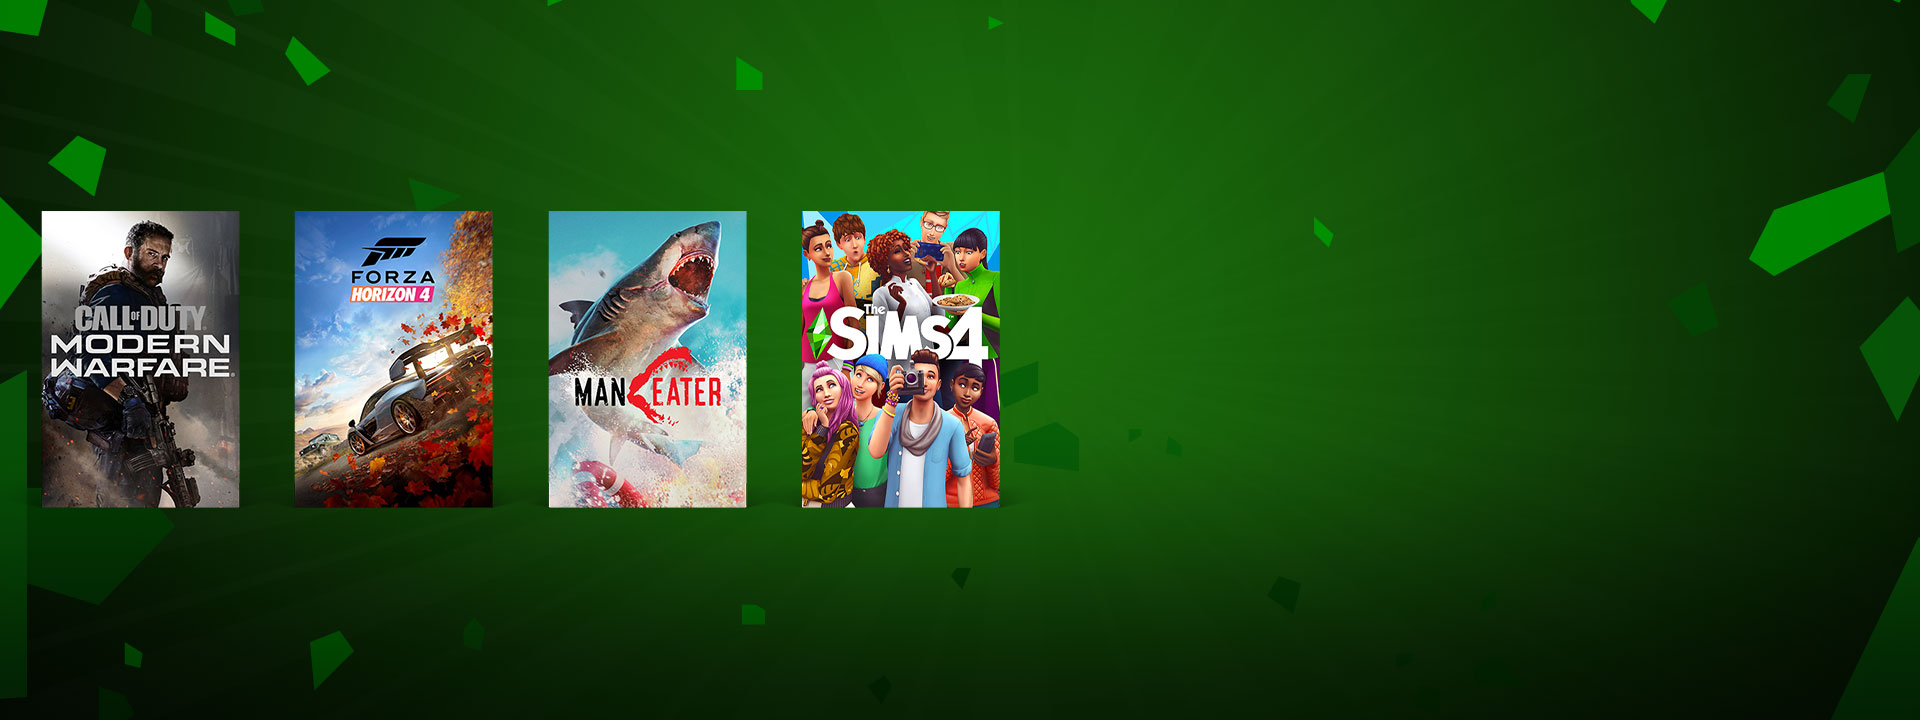 A collage of Xbox games on sale, including Forza Horizon 4 and Call of Duty: Modern Warfare